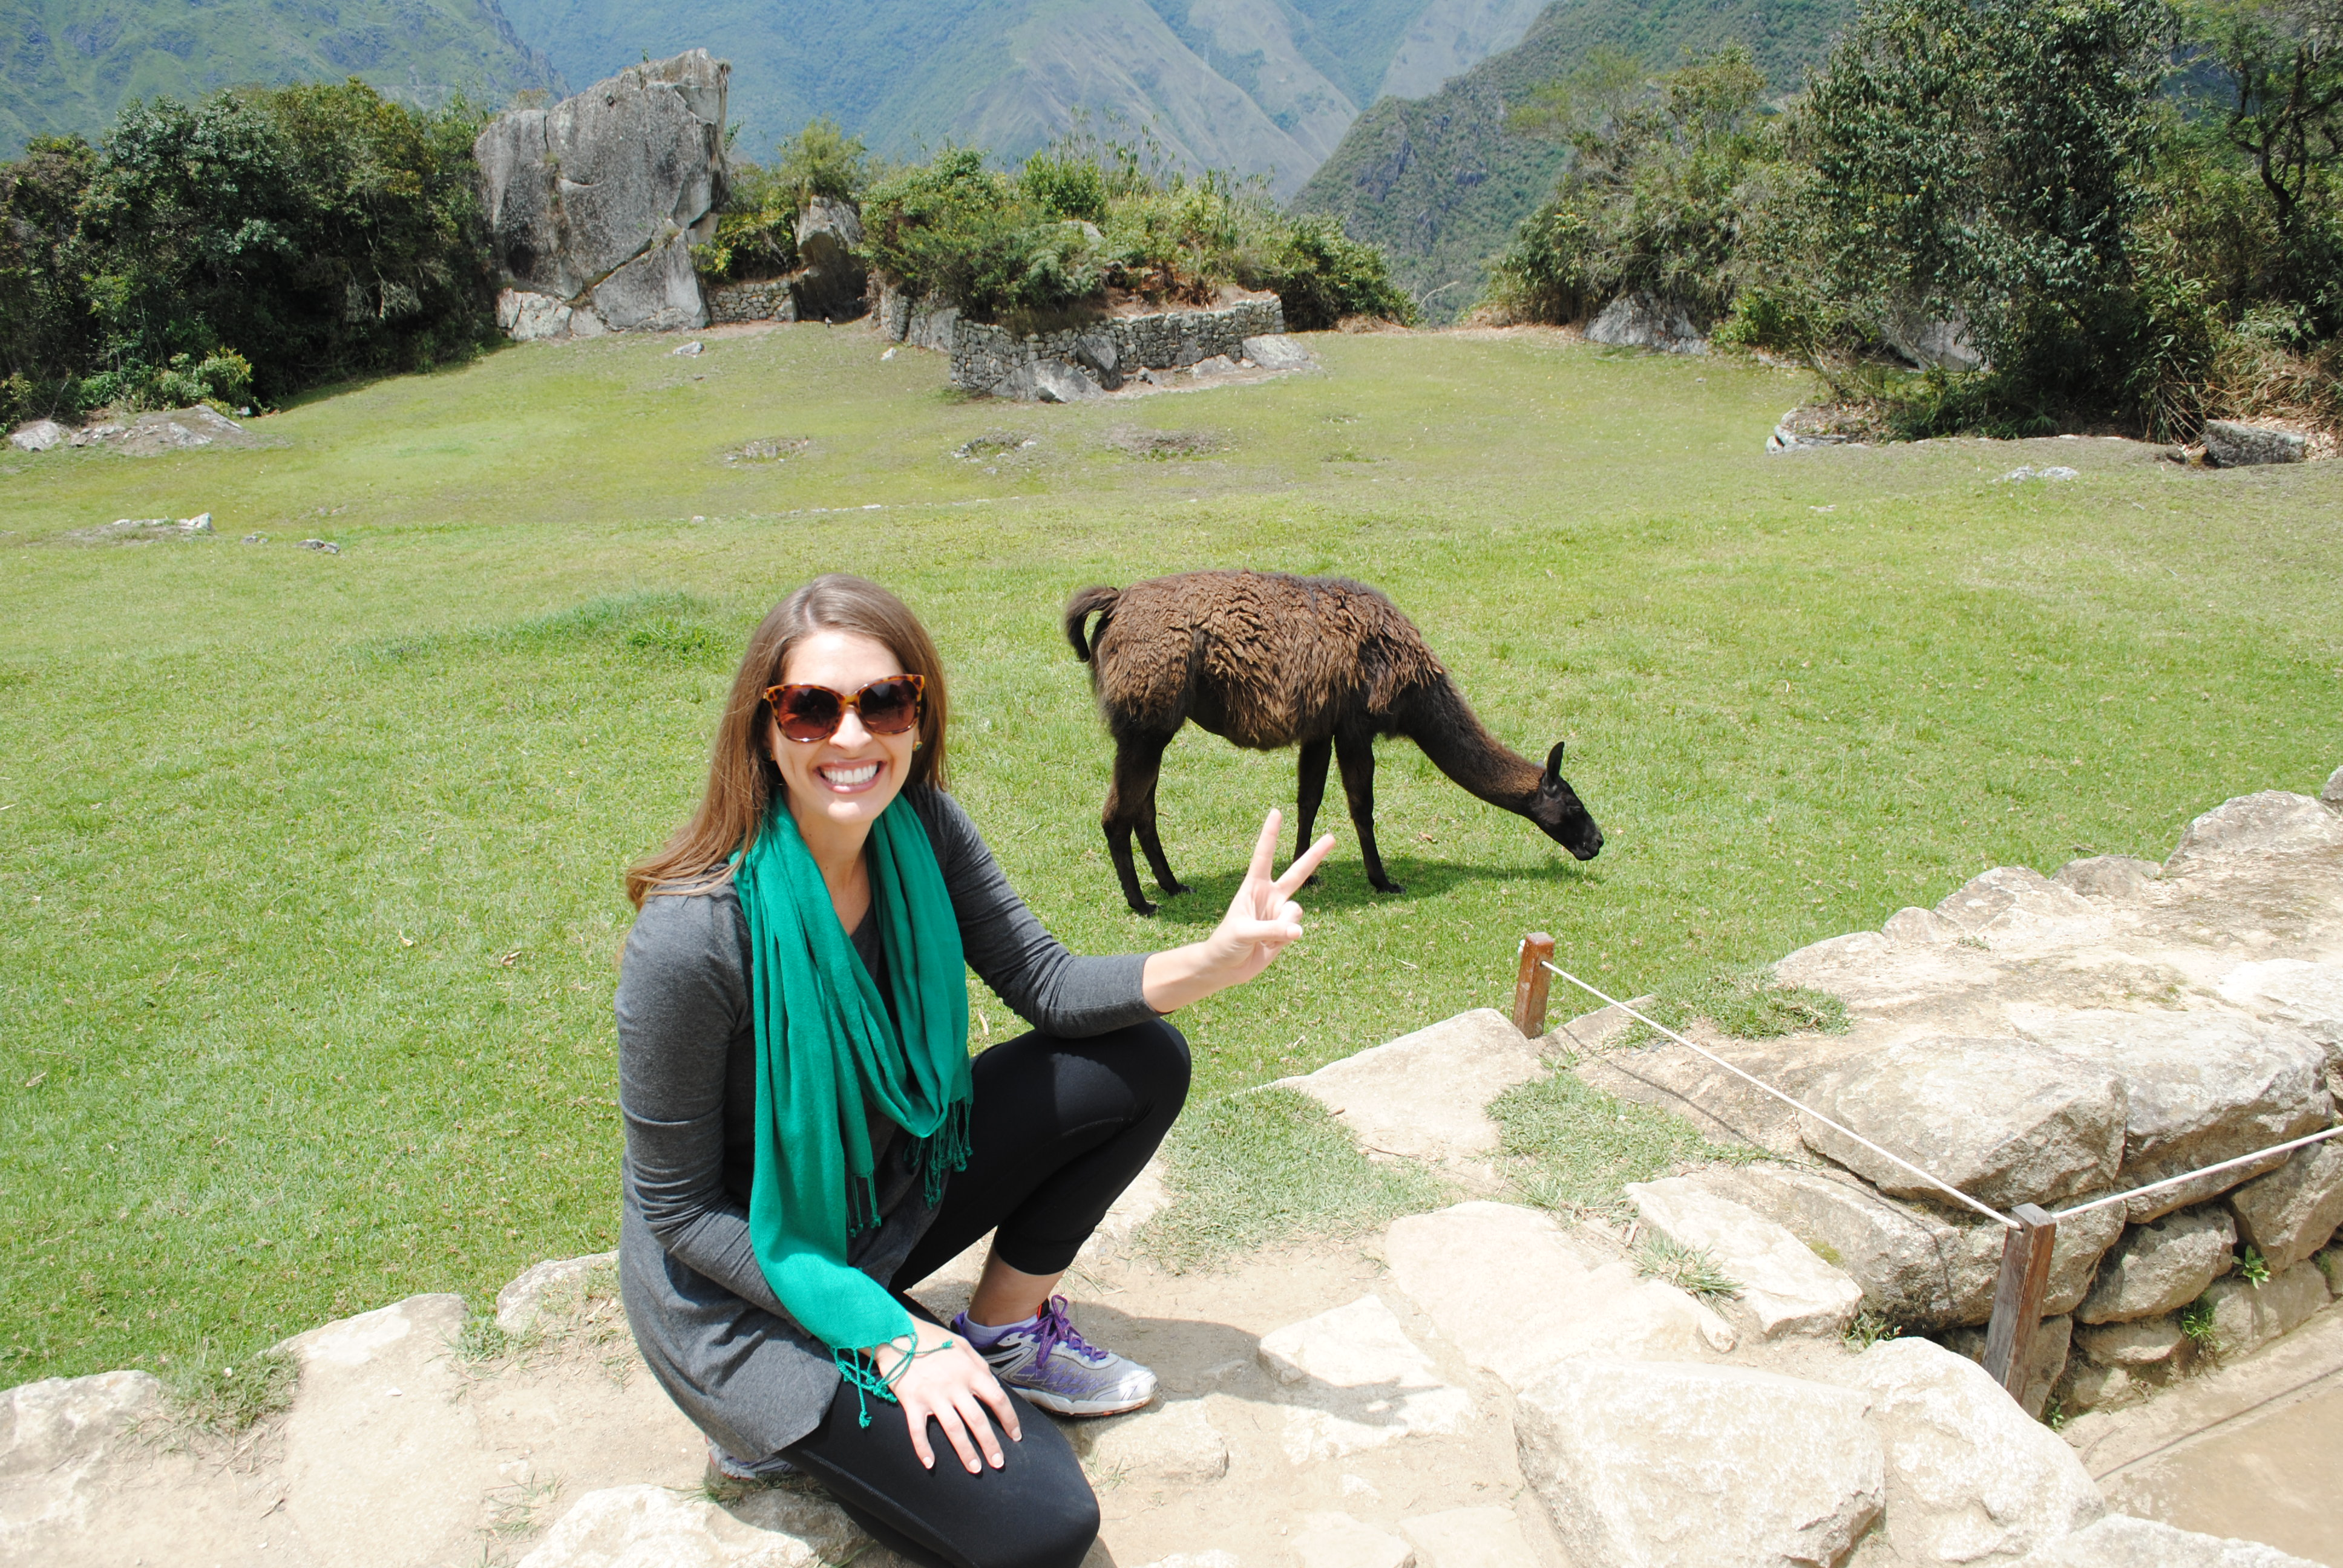 Hanging out with llamas at Machu Picchu